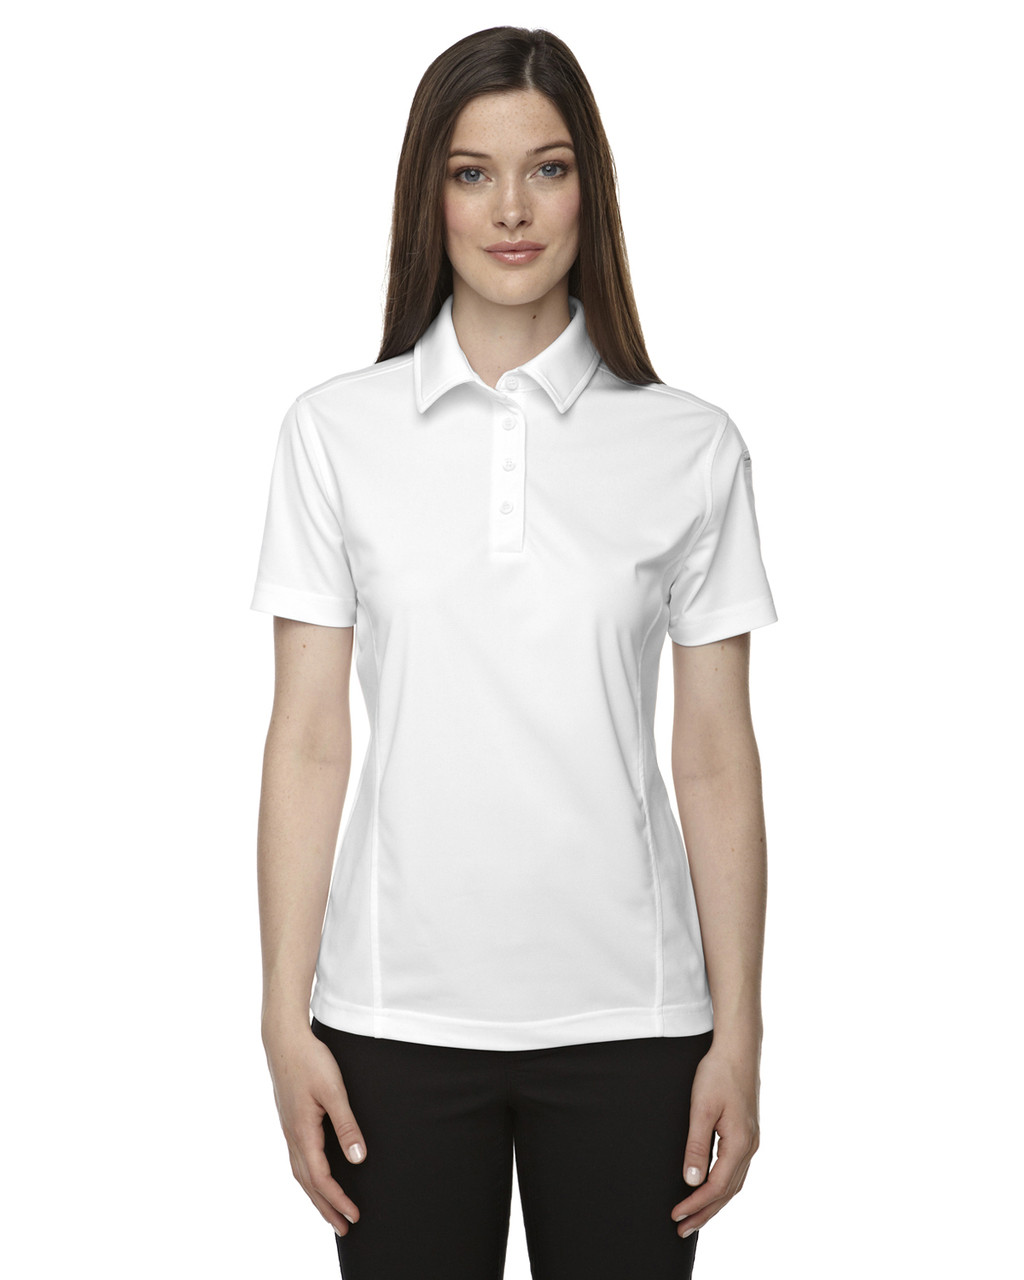 White - 75114 Ash City - Extreme Eperformance Ladies Snag Protection Plus Polo Shirt